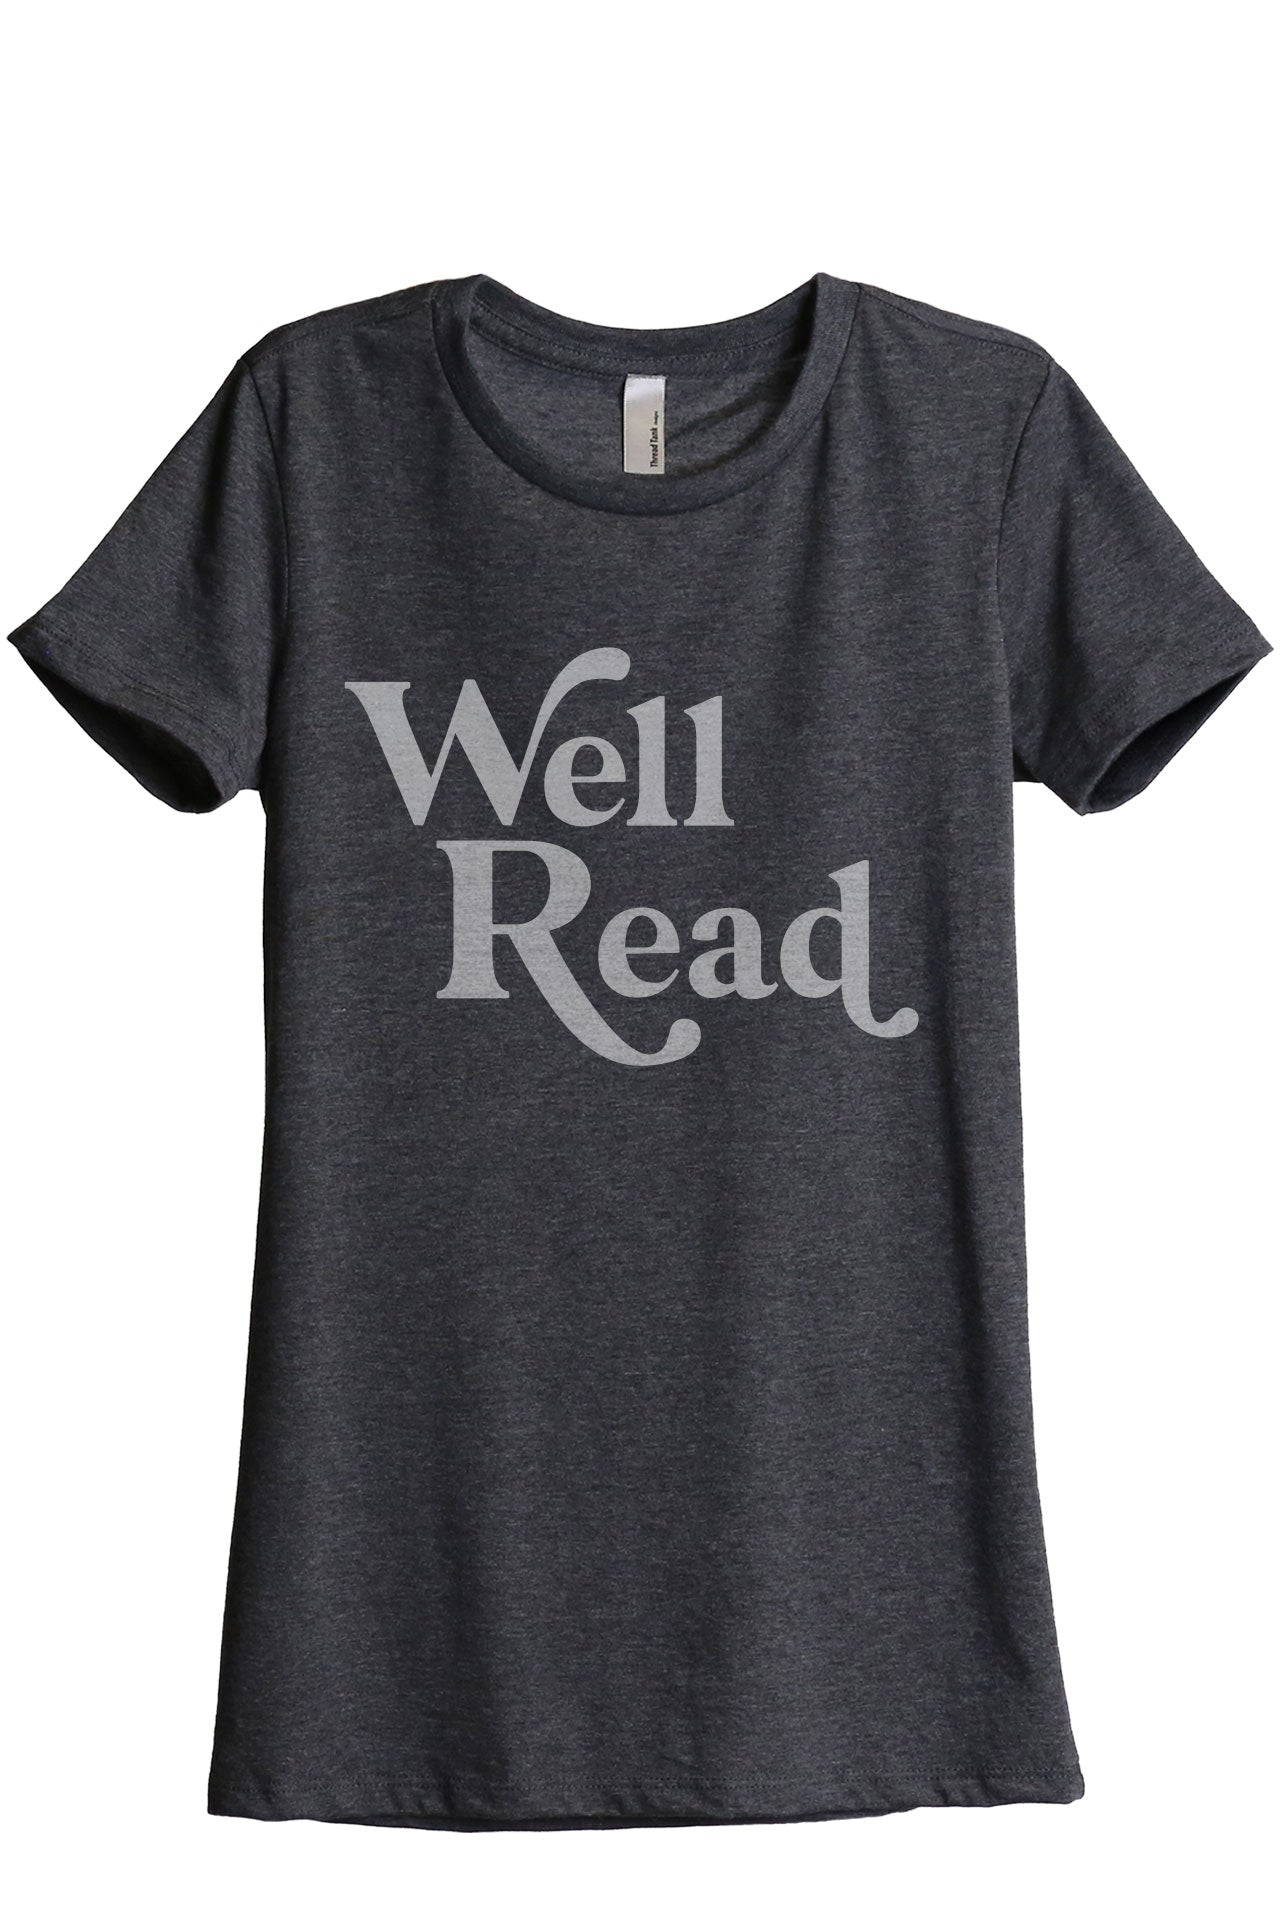 Well Read Women's Relaxed Crewneck T-Shirt Top Tee Charcoal Grey